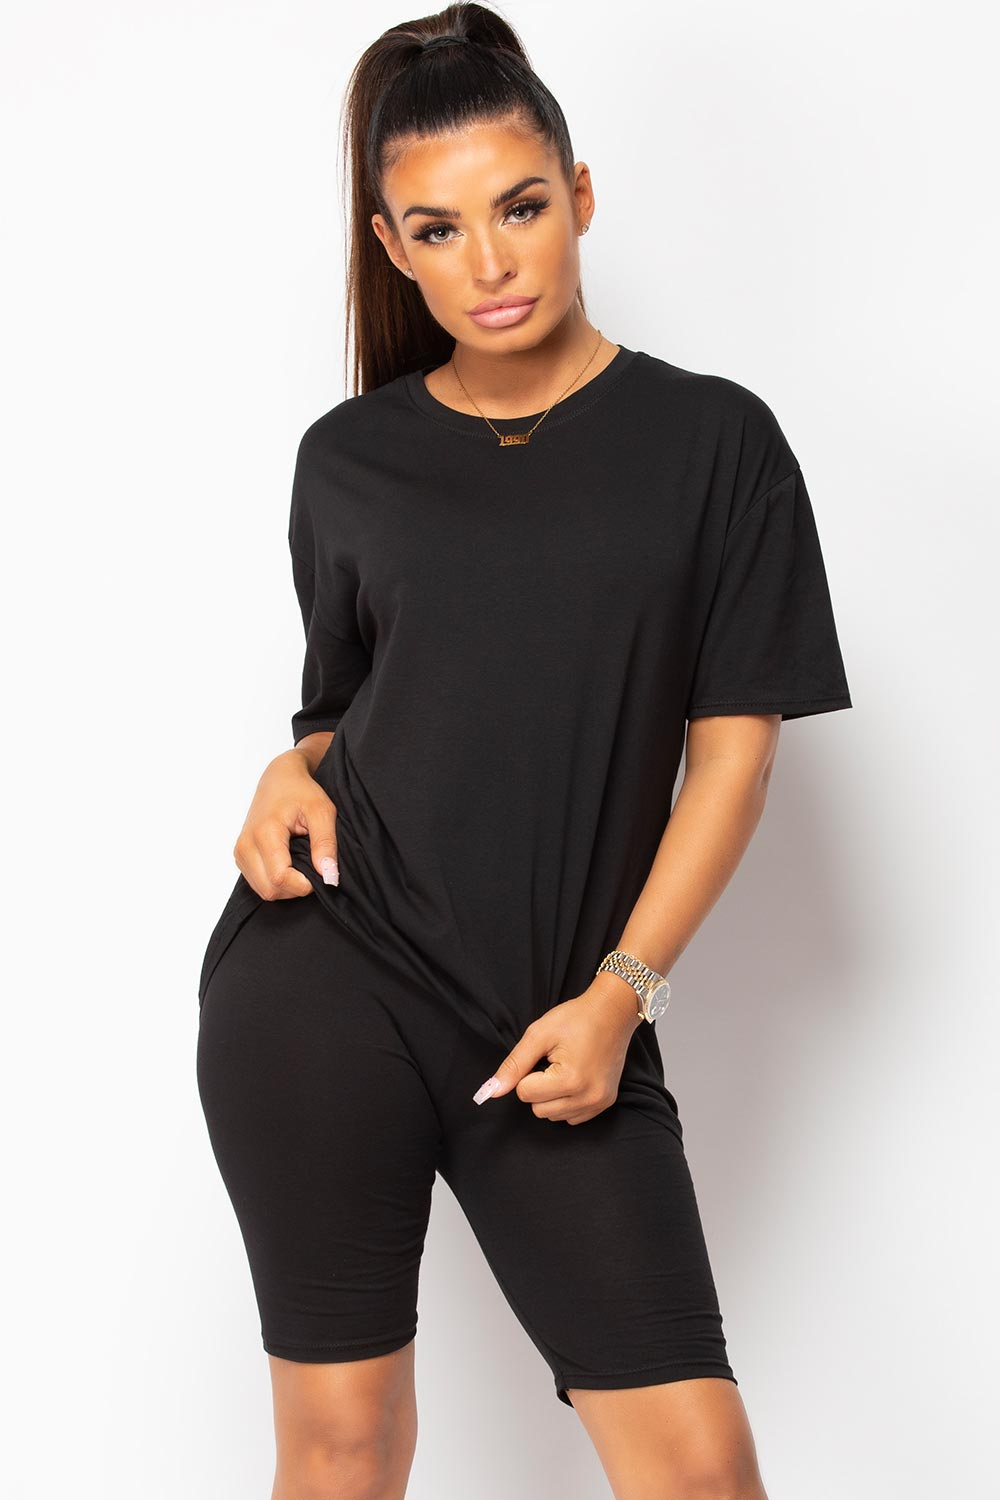 black oversized t shirt and cycling shorts set